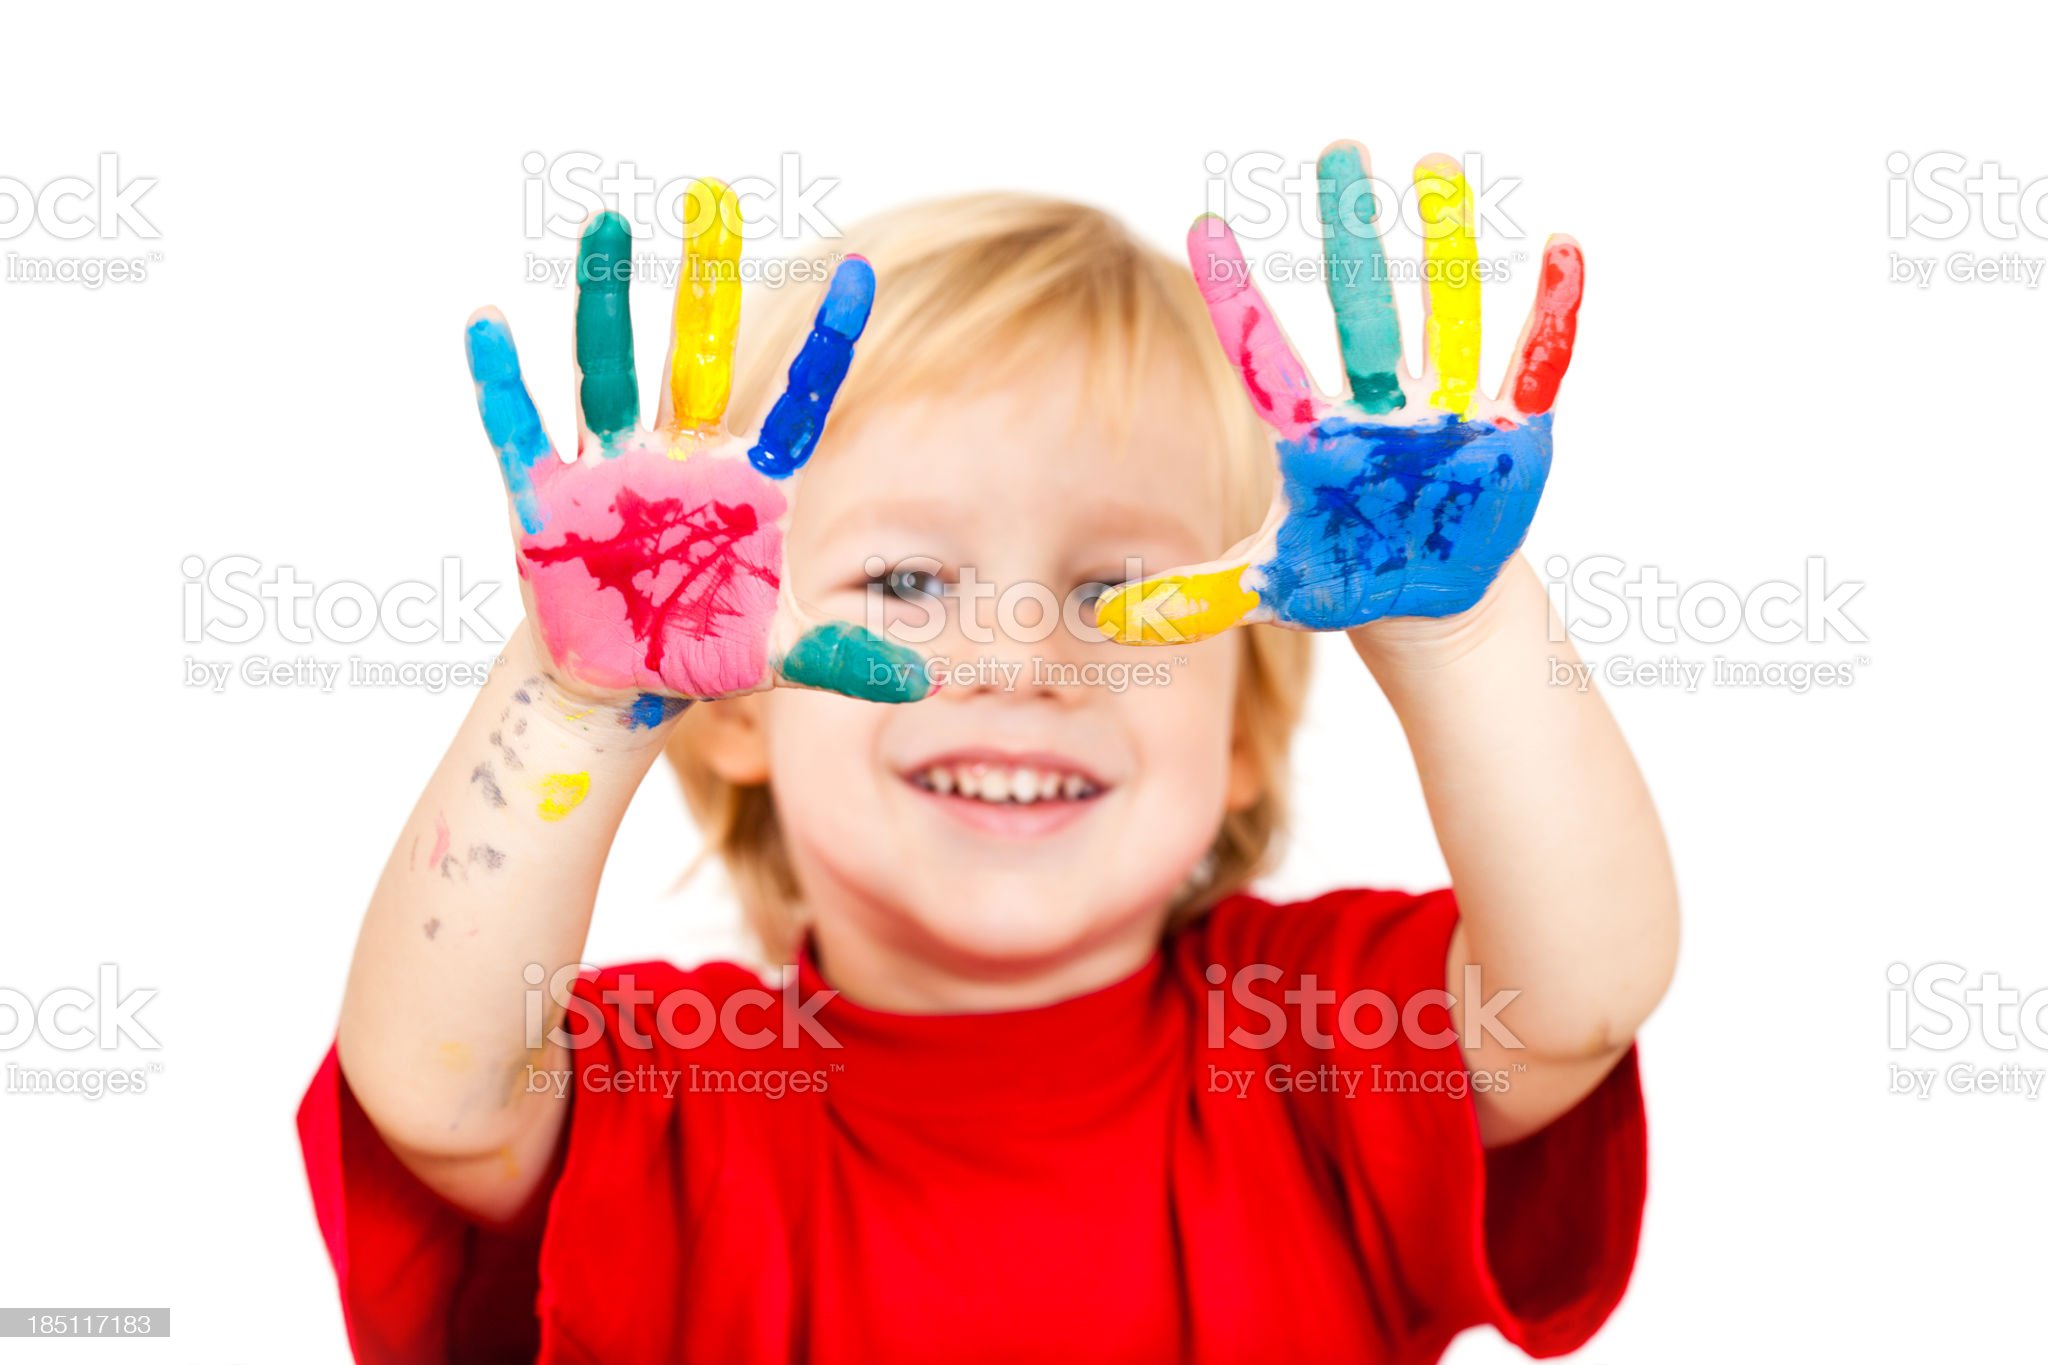 Happy little boy with painted hands royalty-free stock photo